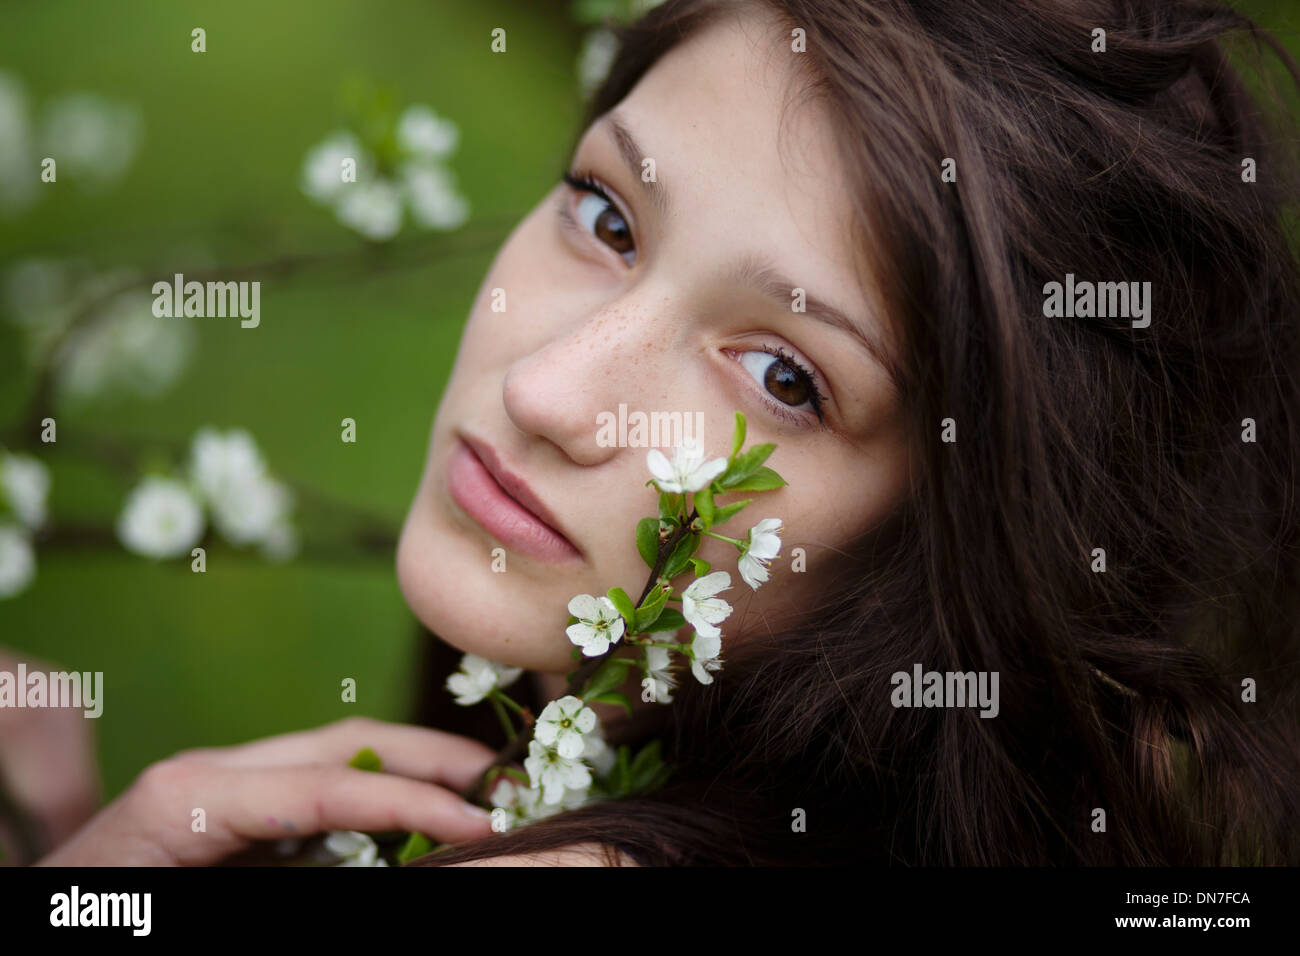 Girl with cherry blossoms, portrait - Stock Image